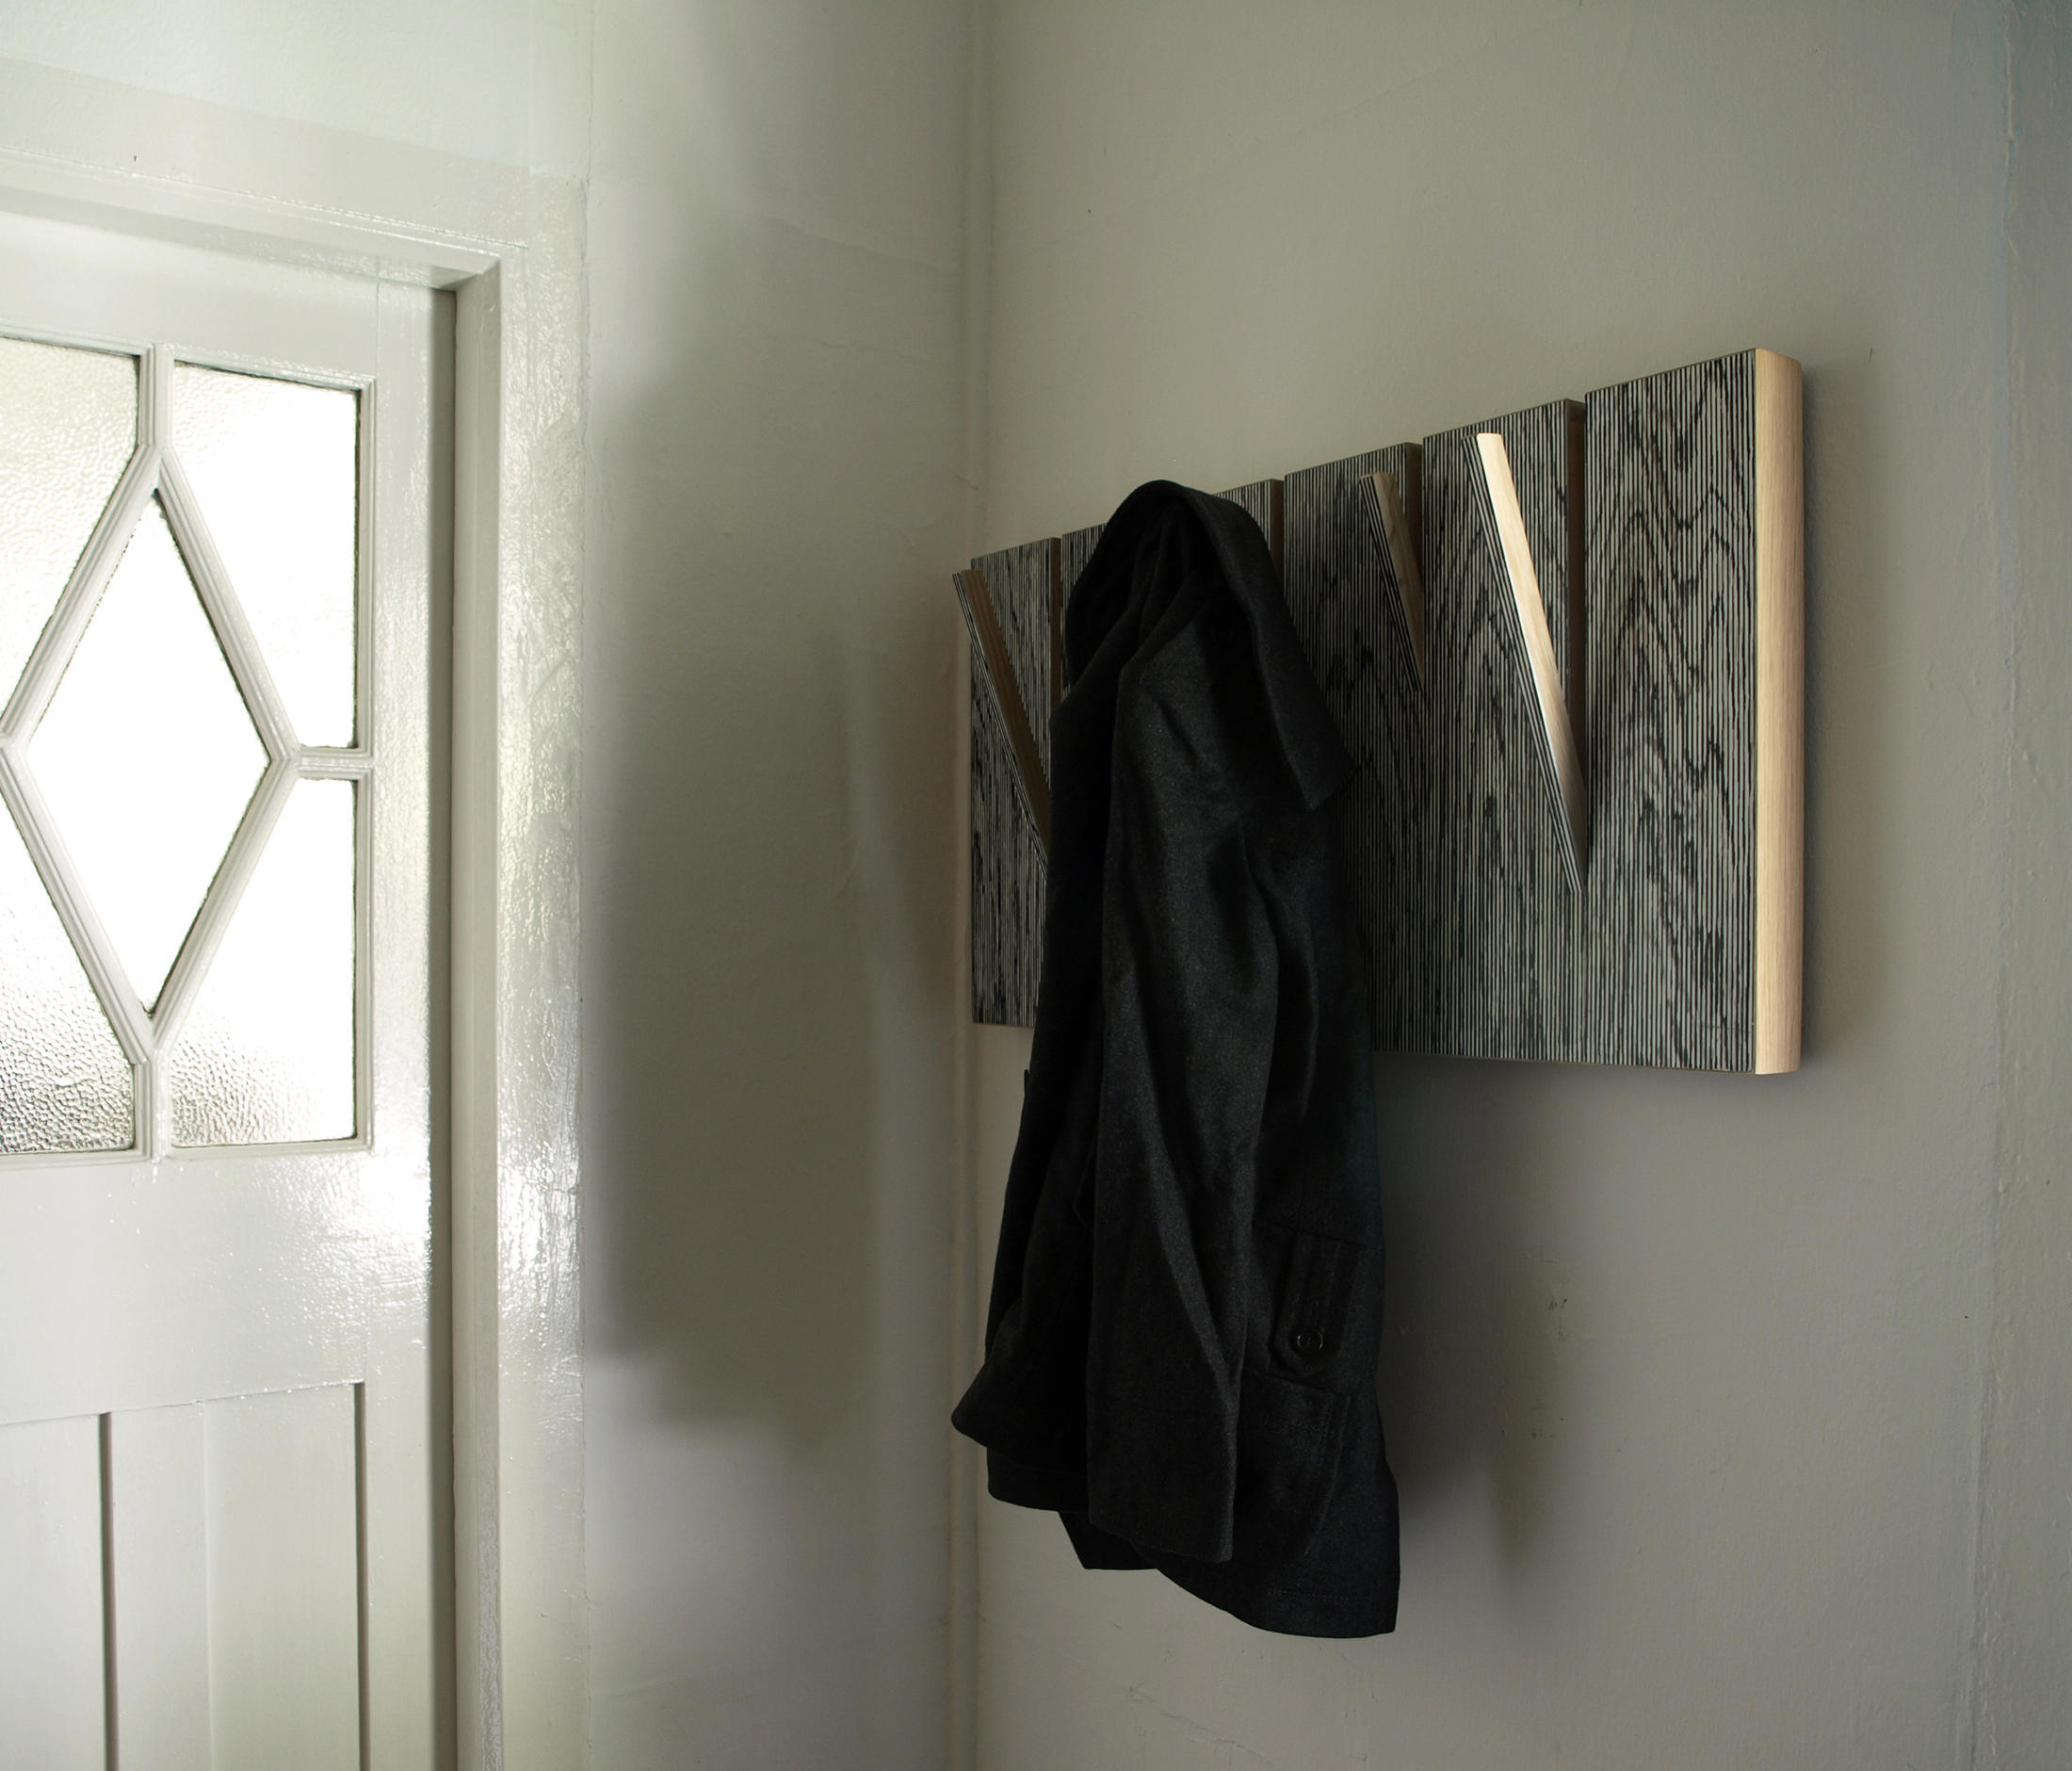 RACK YOUR BRAIN COAT - Hook rails from Foundry | Architonic